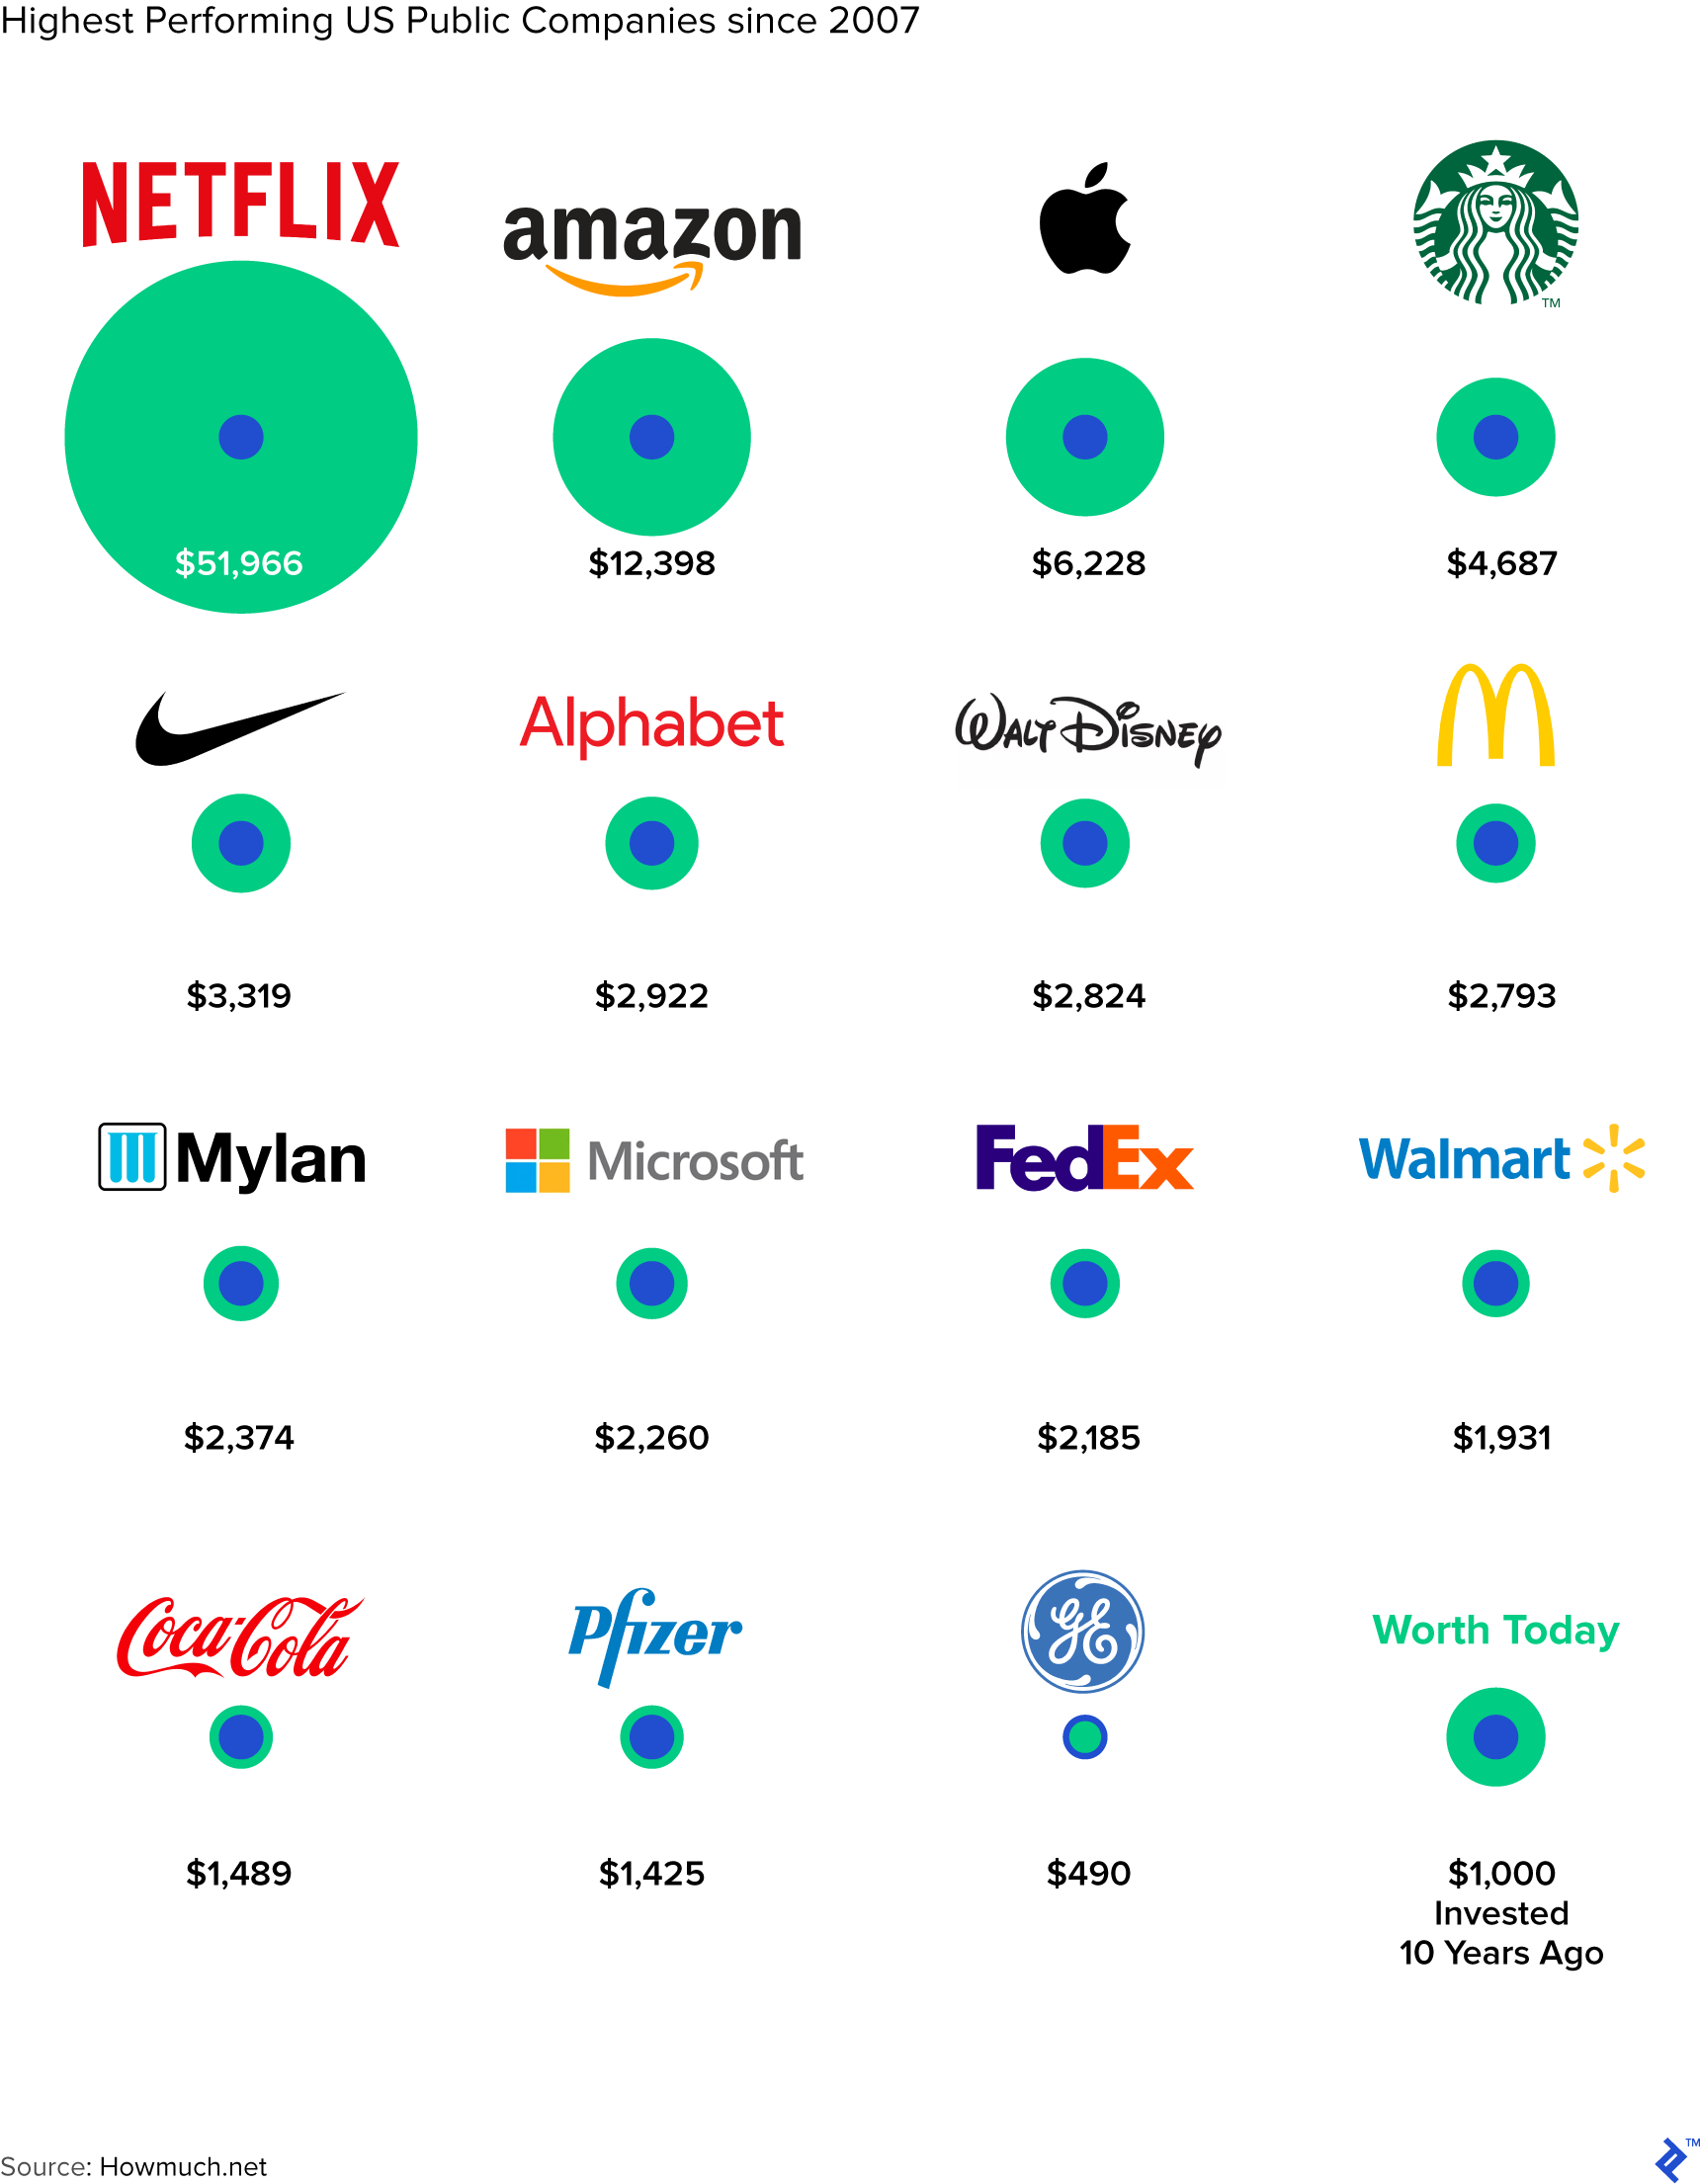 Highest performing US public companies since 2017.